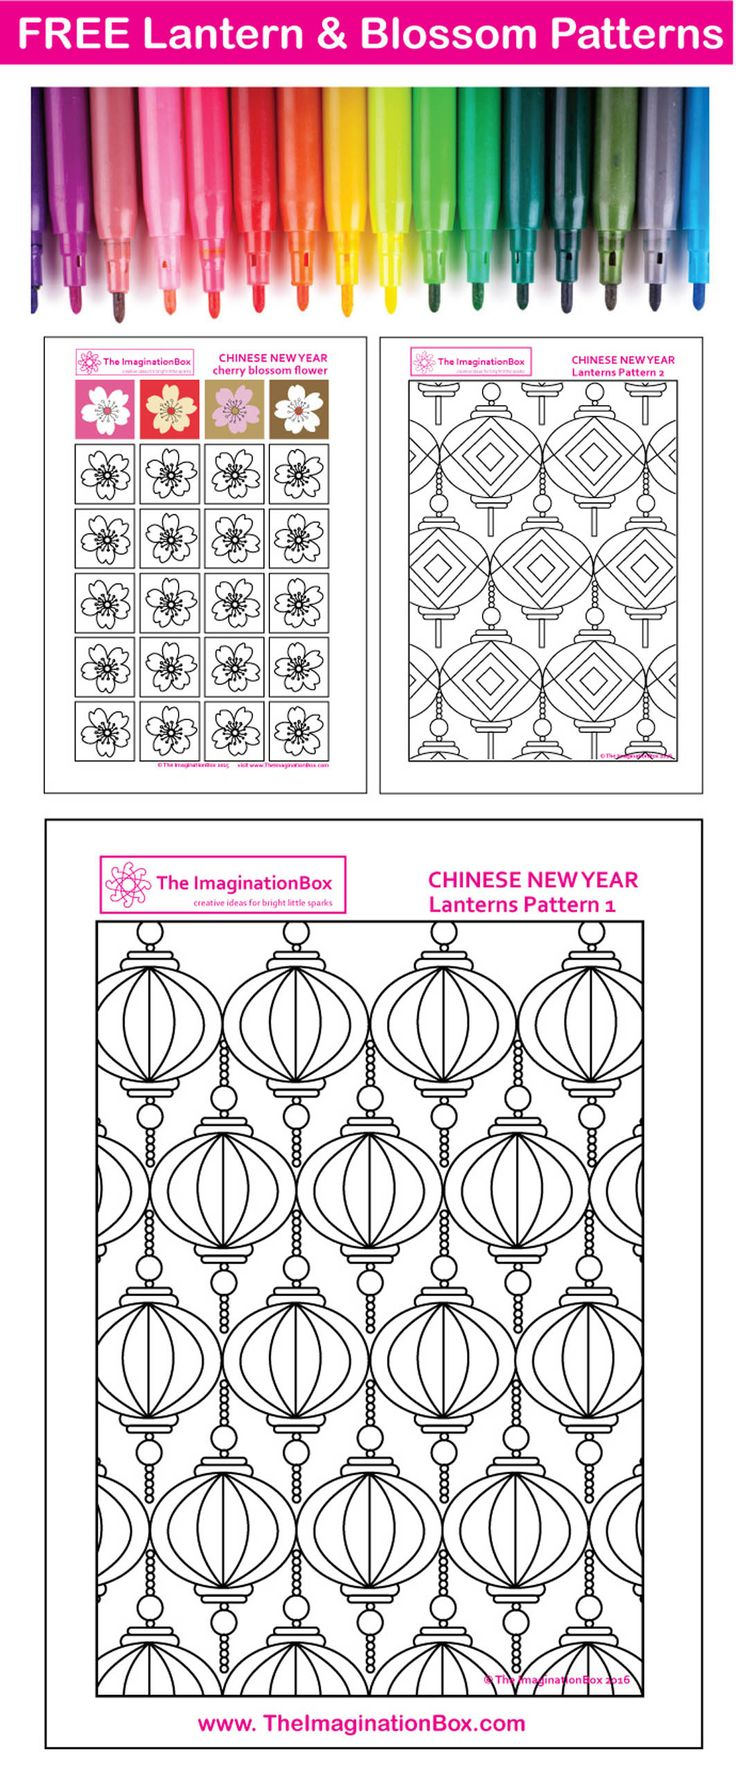 The 664 best Chinese New Year Art for Kids images on Pinterest ...